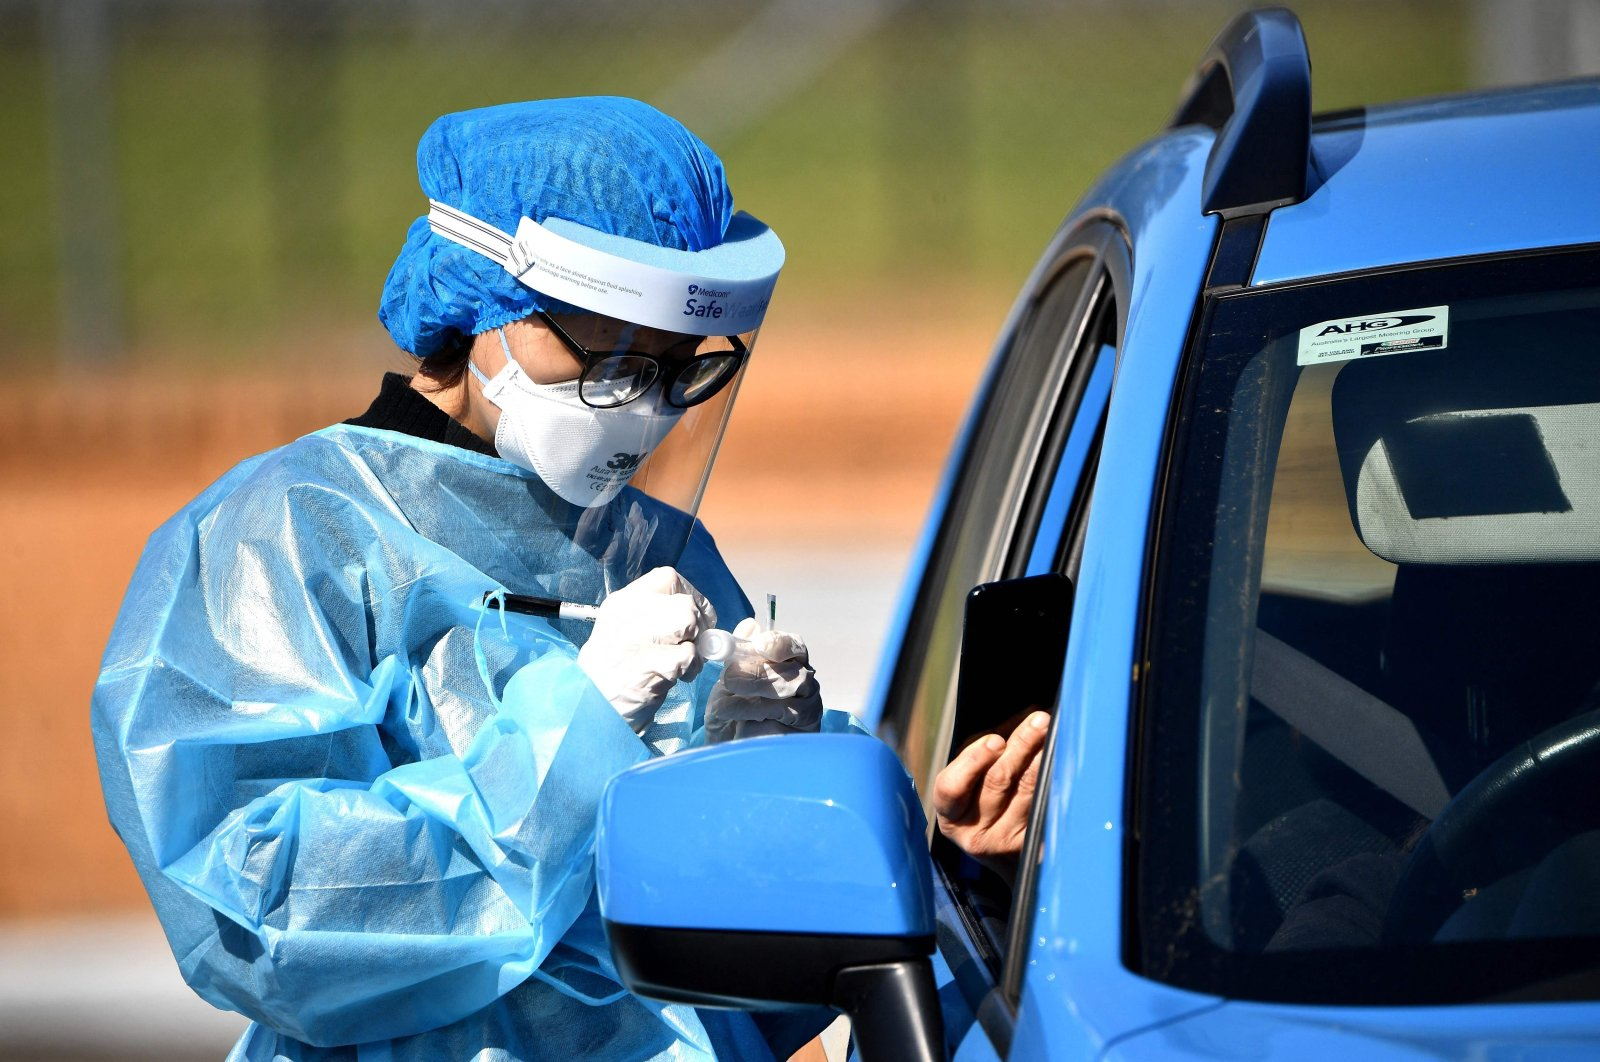 A health worker takes a swab sample at a COVID-19 drive through testing site in the Smithfield suburb of Sydney, Australia, Aug. 12, 2021. (AFP Photo)